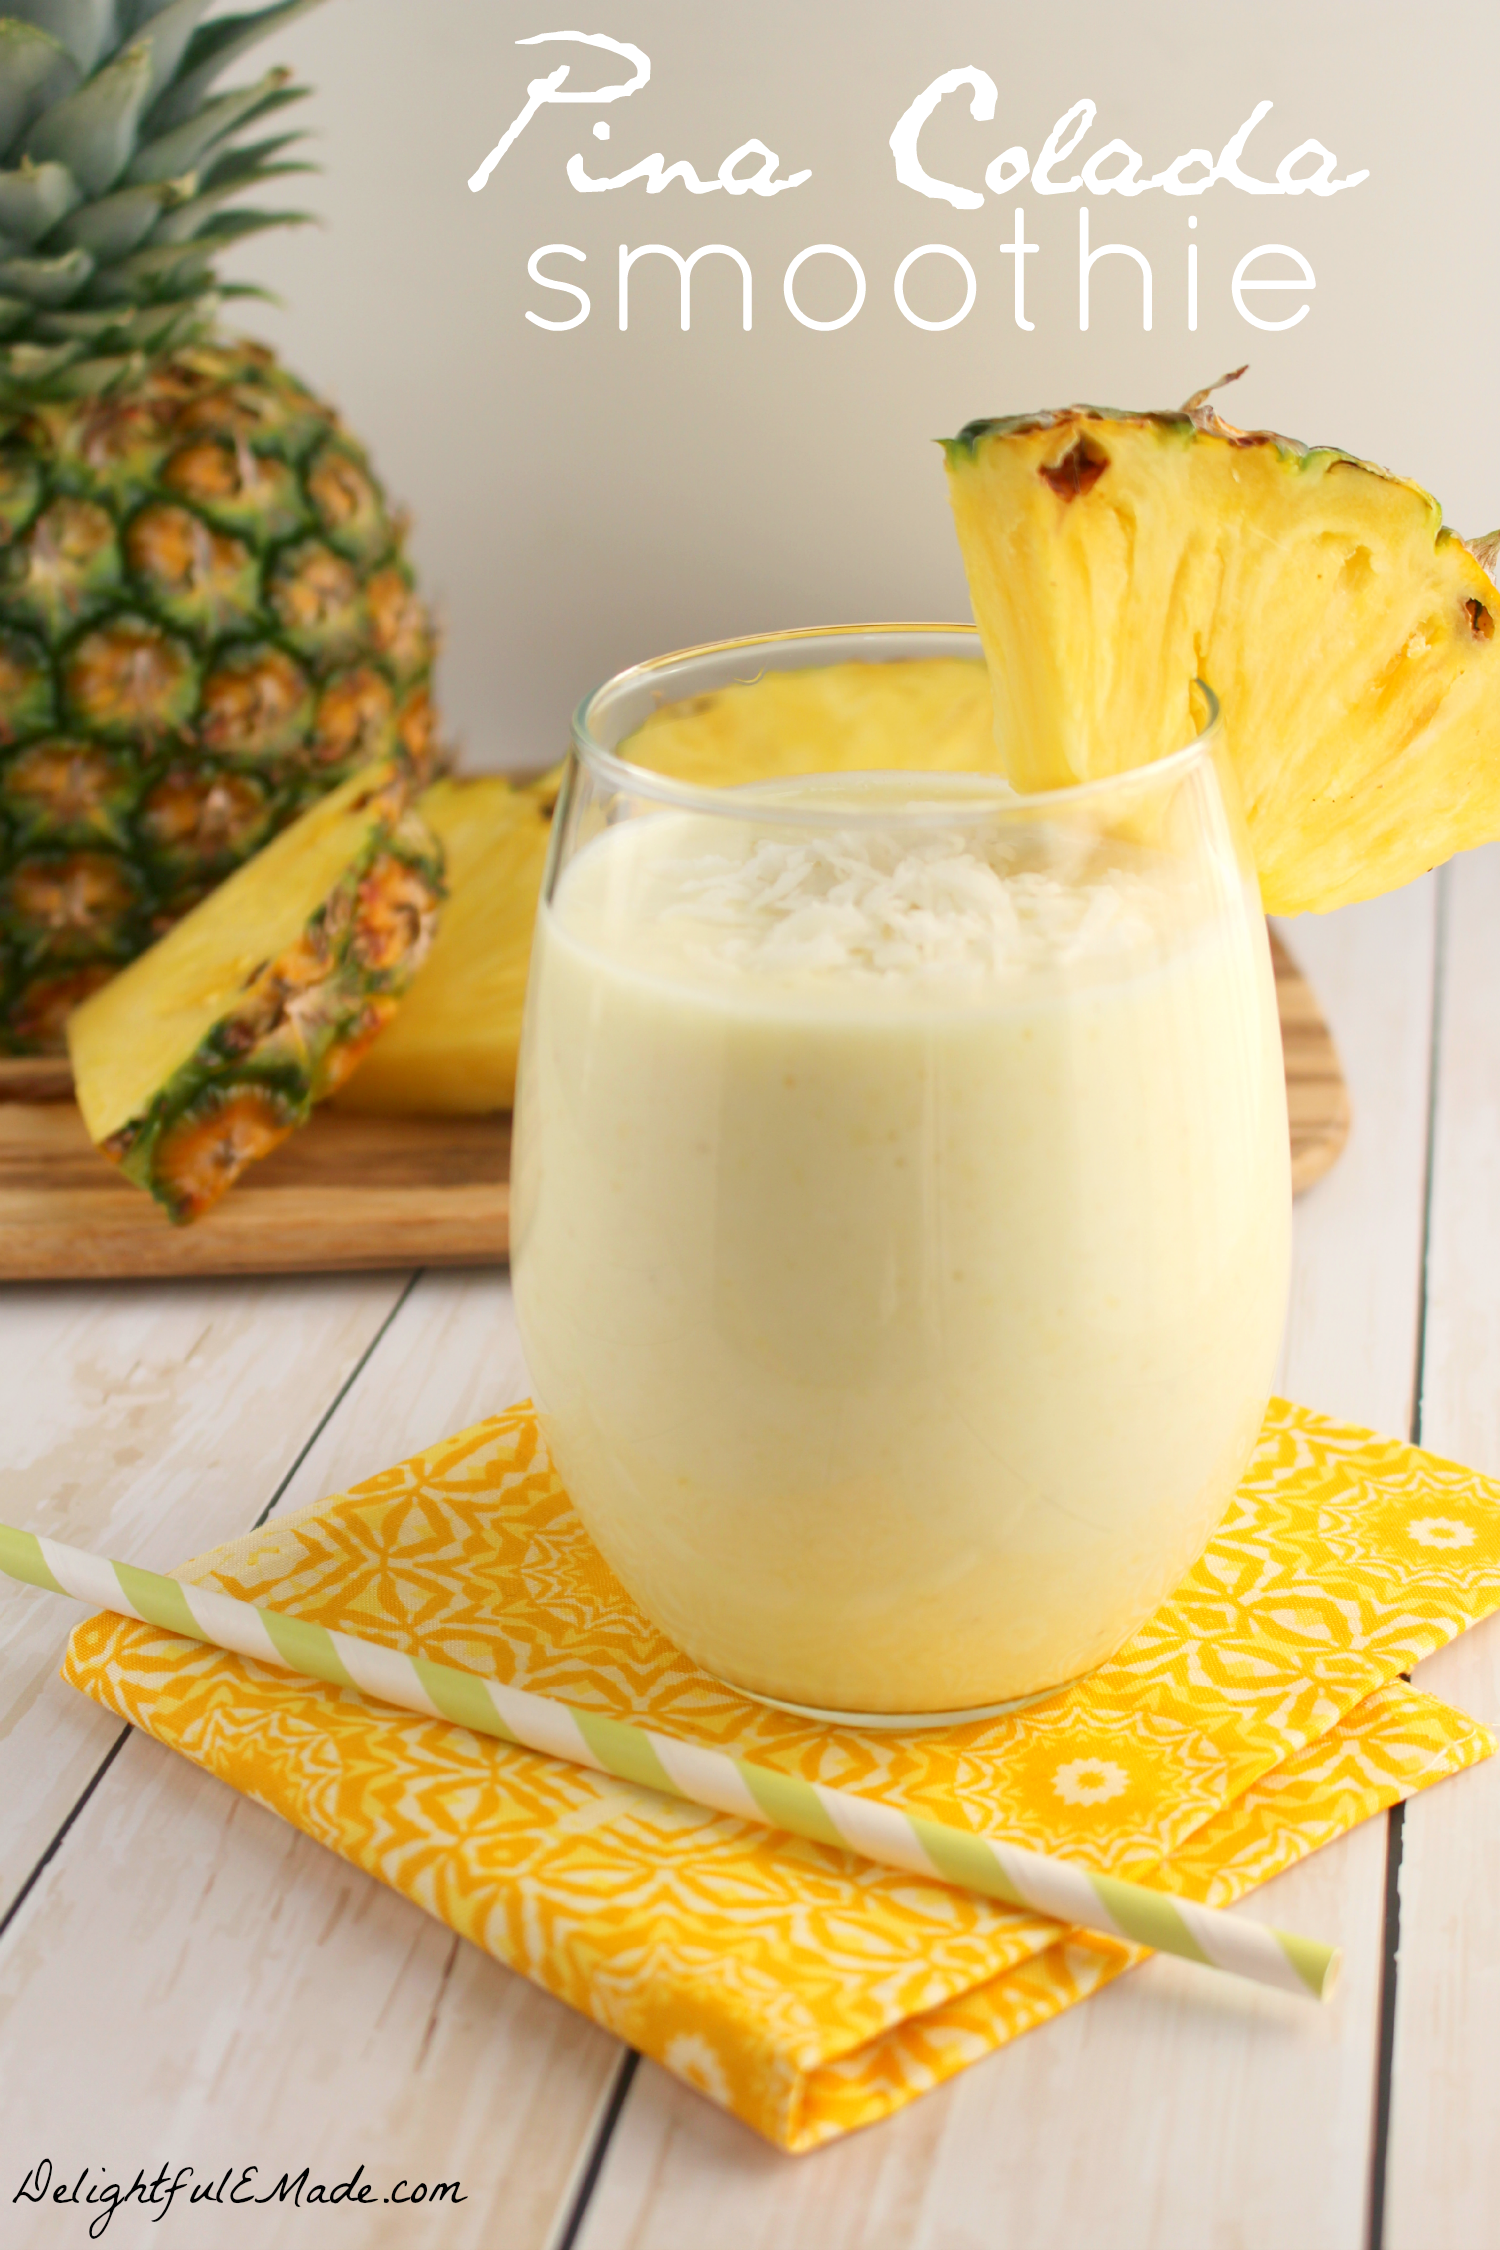 Pina Colada Smoothie Two Ways Breakfast Or Cocktail